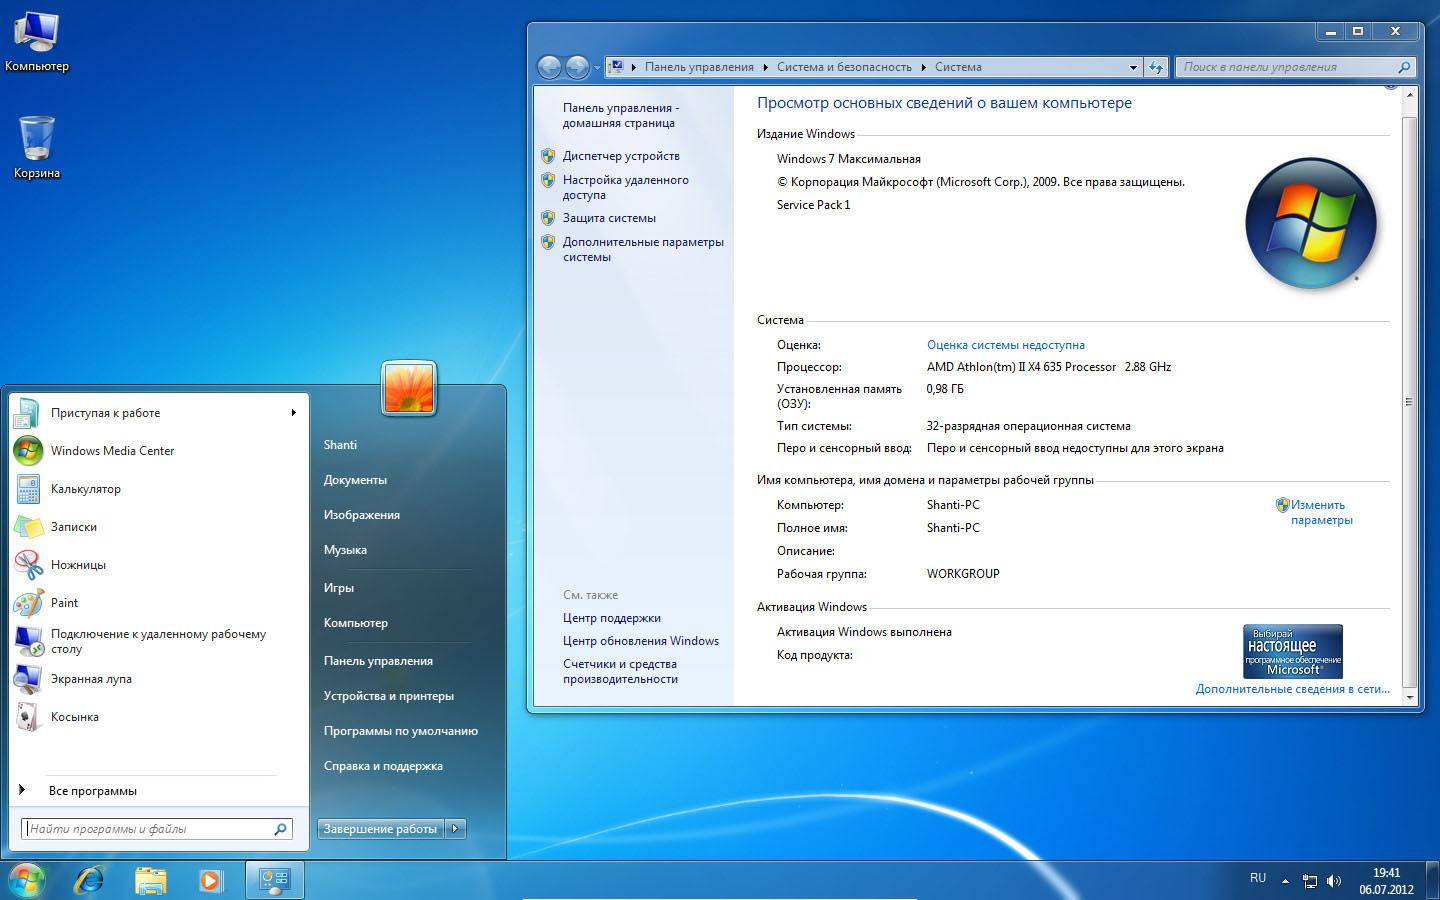 how to get genuine windows 7 professional for free